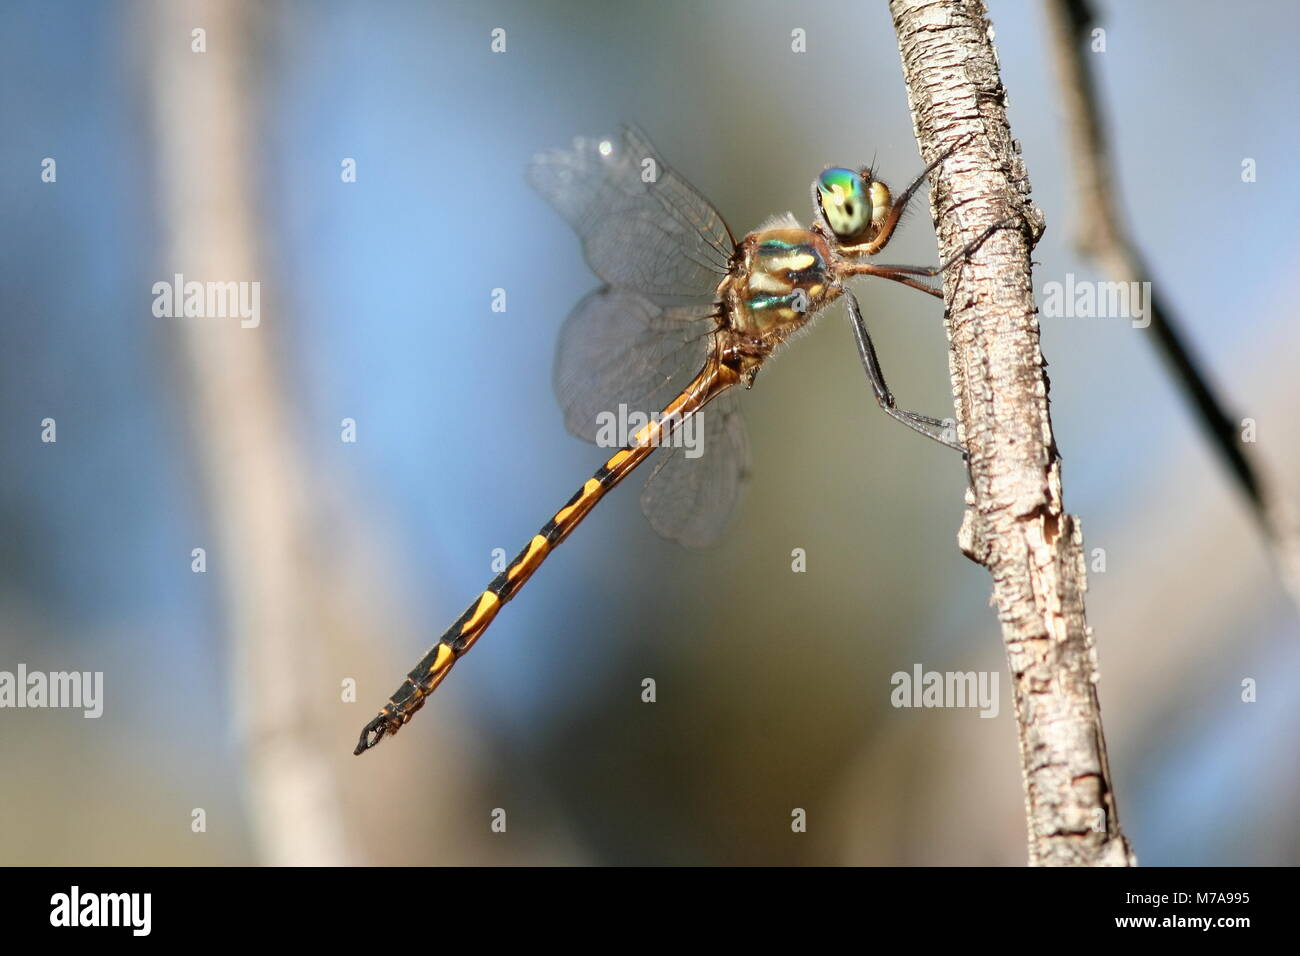 dragonfly stock alamy australian photo emerald